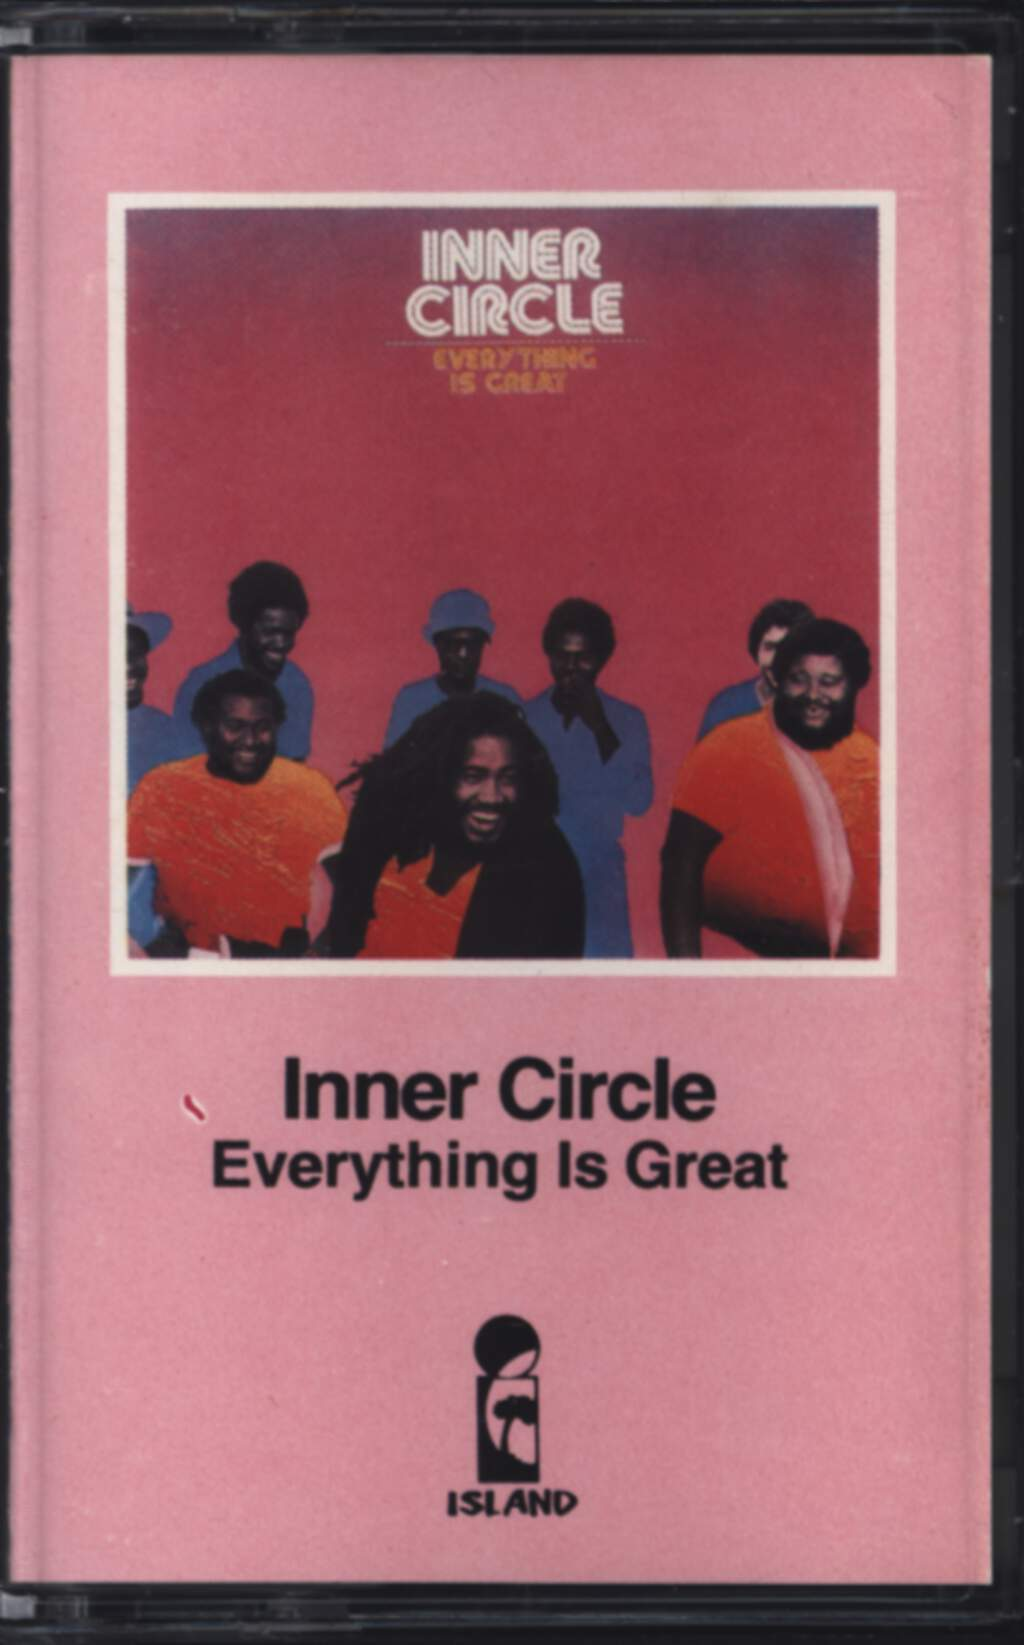 Inner Circle: Everything Is Great, Compact Cassette